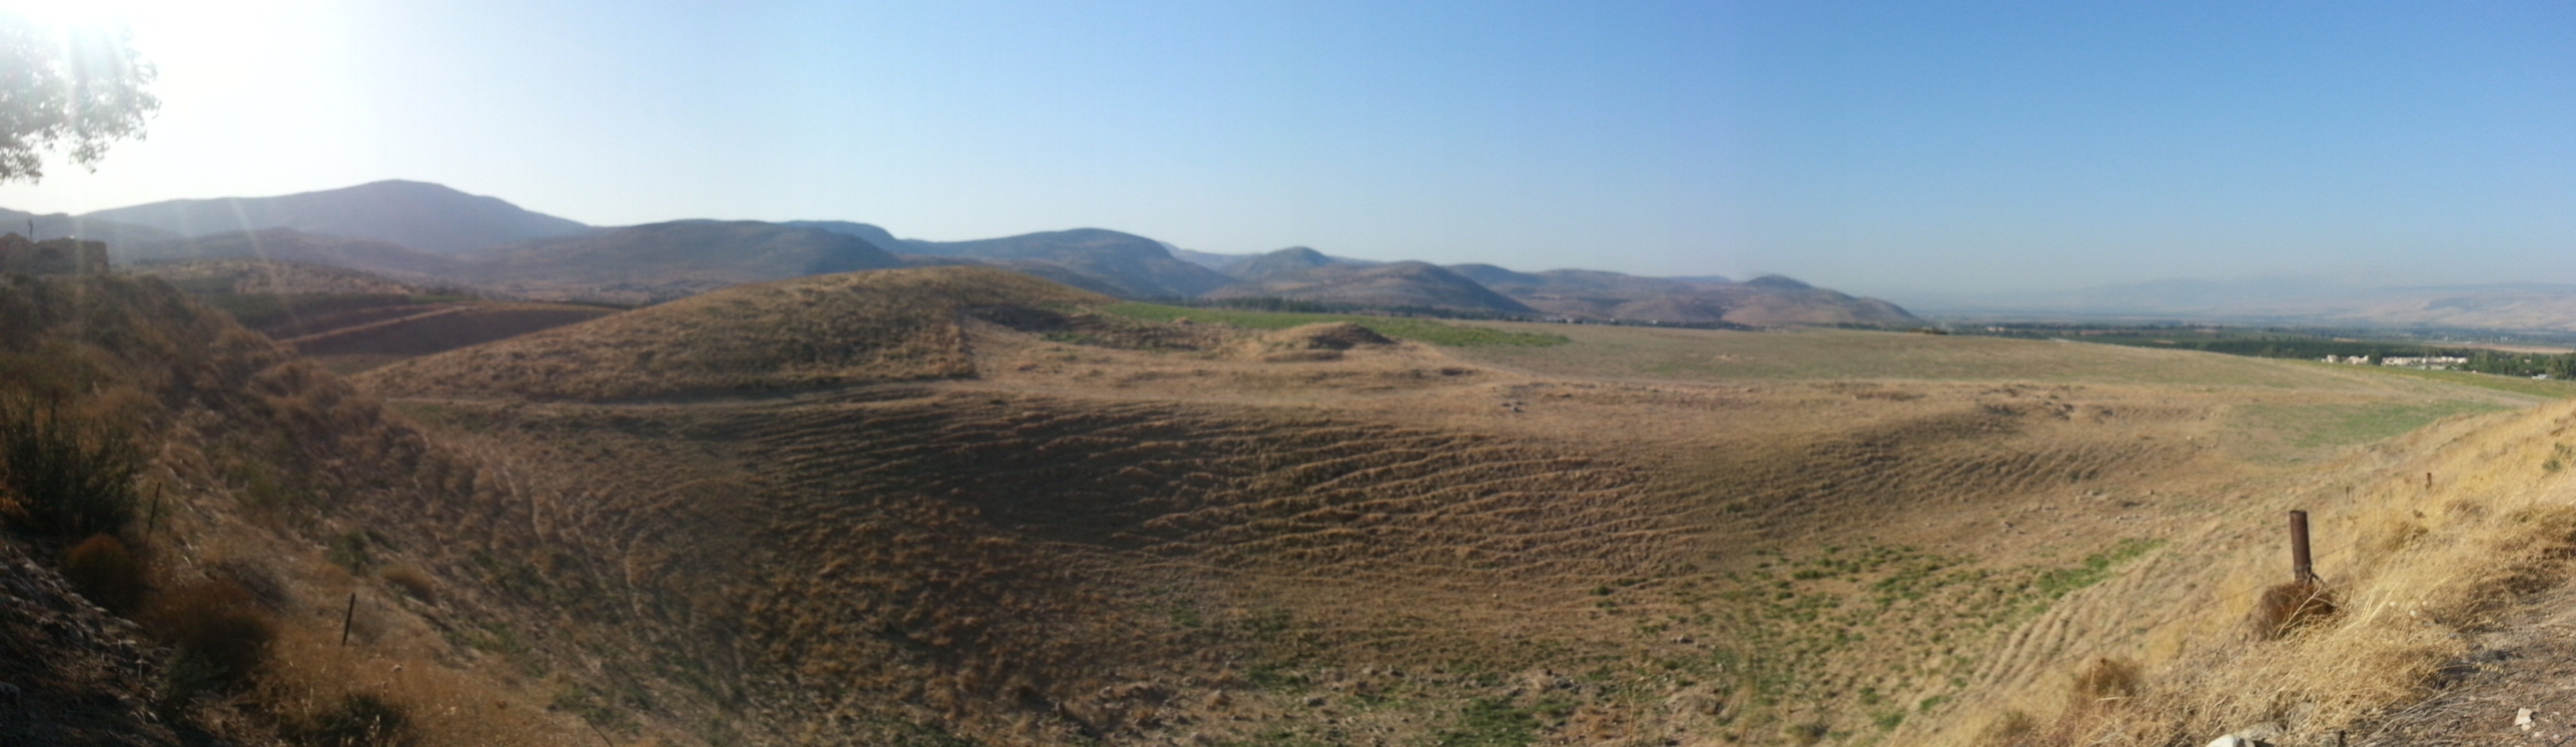 View from the acropolis at Tel Hazor